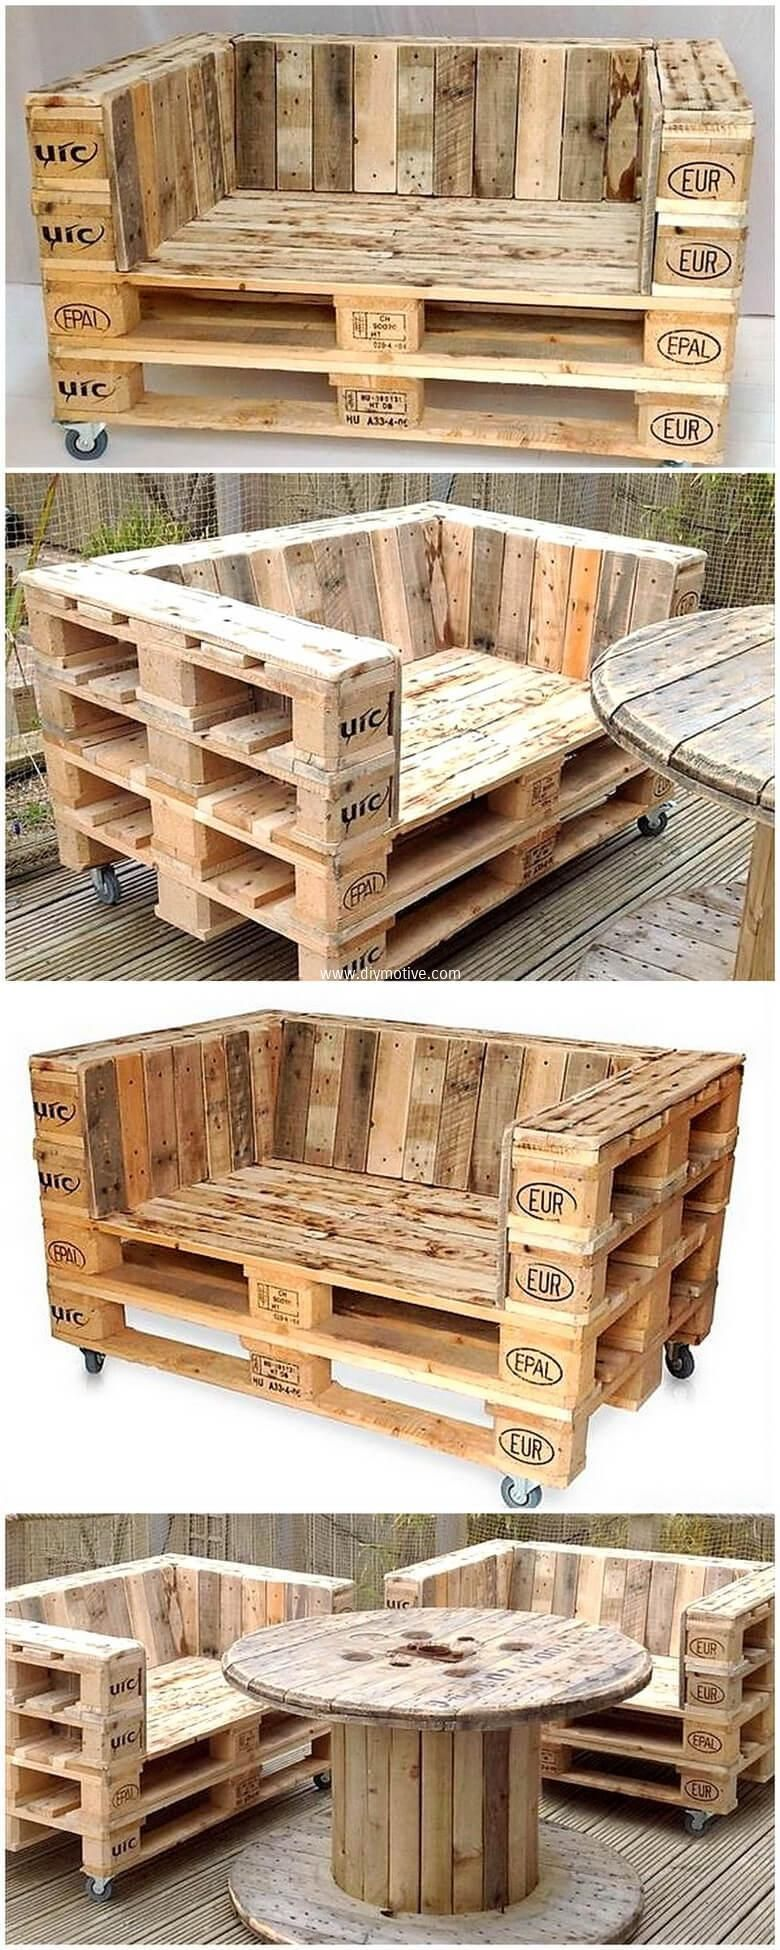 Arredo Giardino In Pallet wood pallet patio couch seating #palletcouchespatio